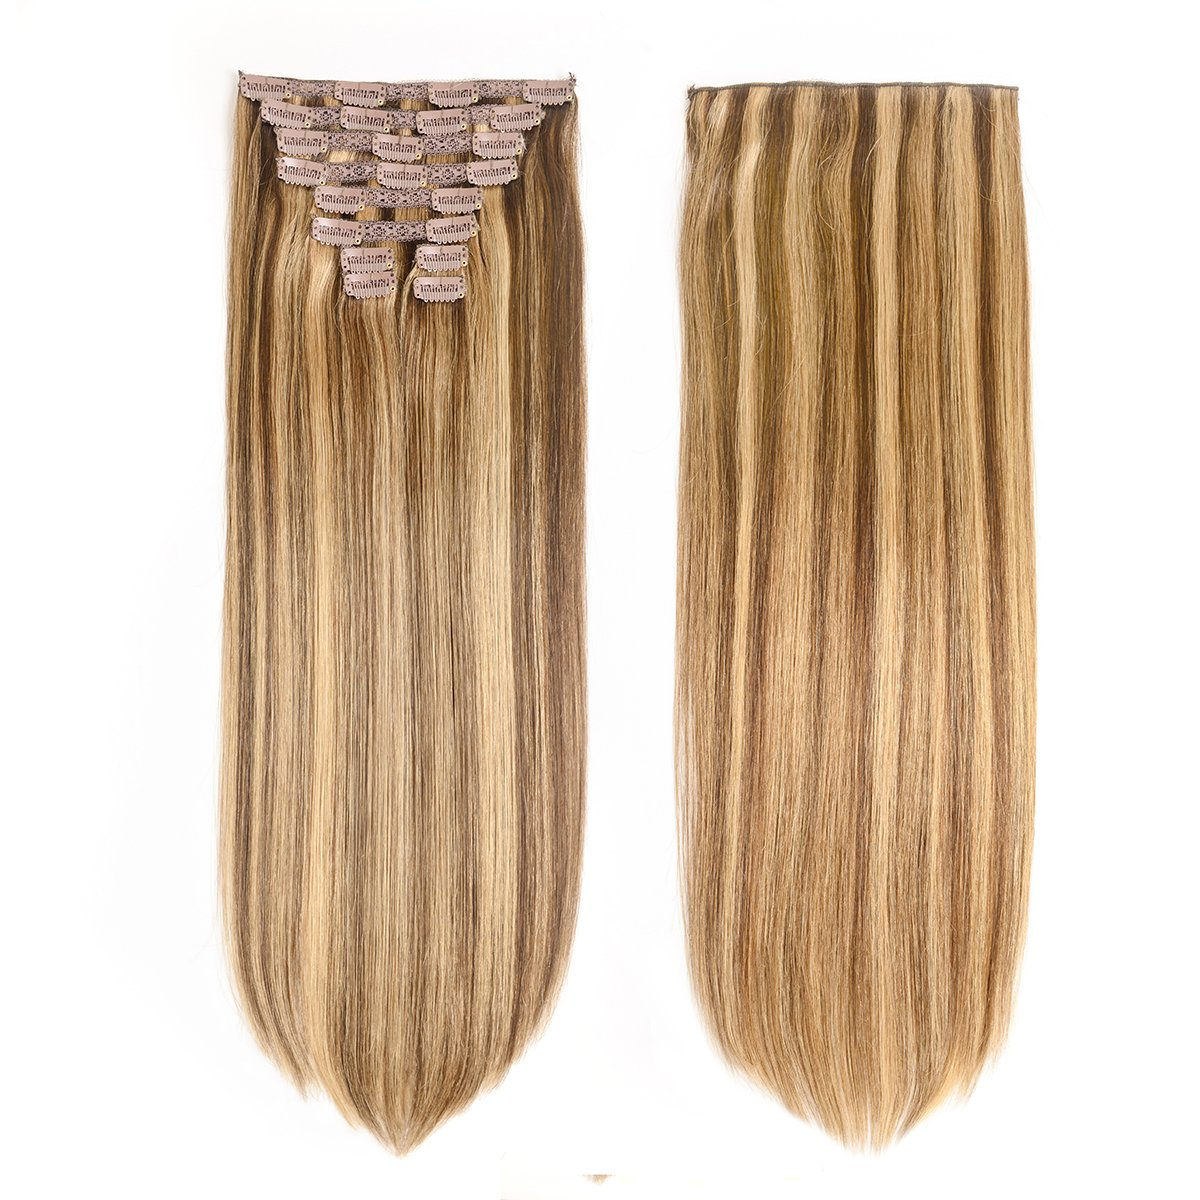 Hair Extensions Storage Bag With Wooden Hanger Carrier Case